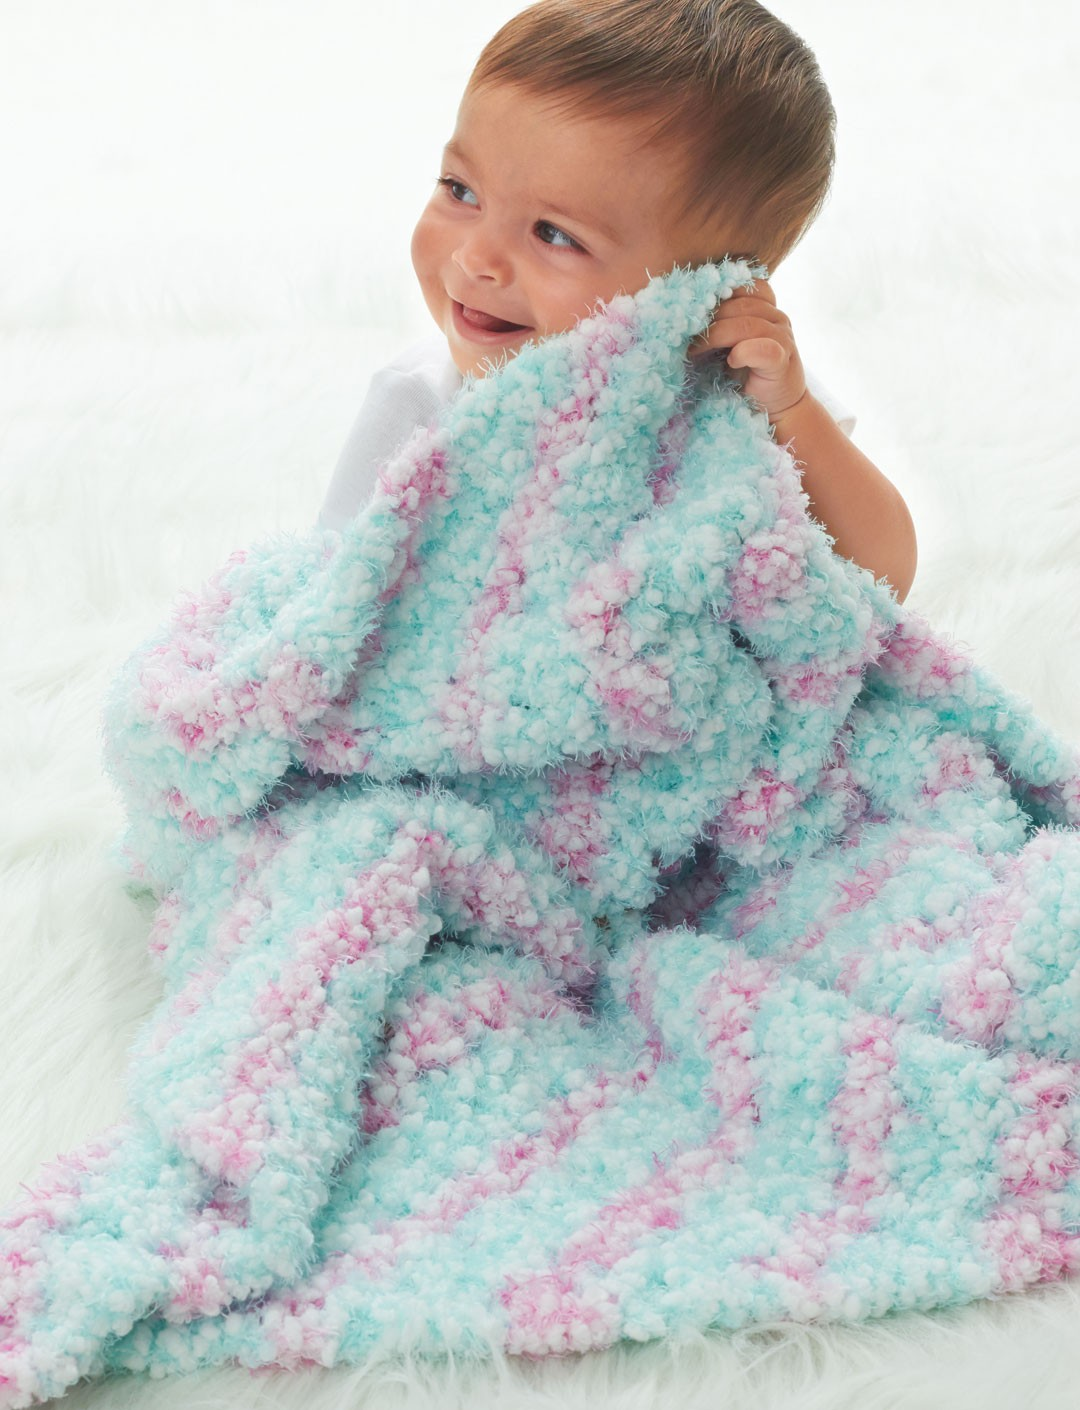 Bernat Baby Blanket Knitting Patterns : Bernat Corner to Corner Blanket, Crochet Pattern Yarnspirations